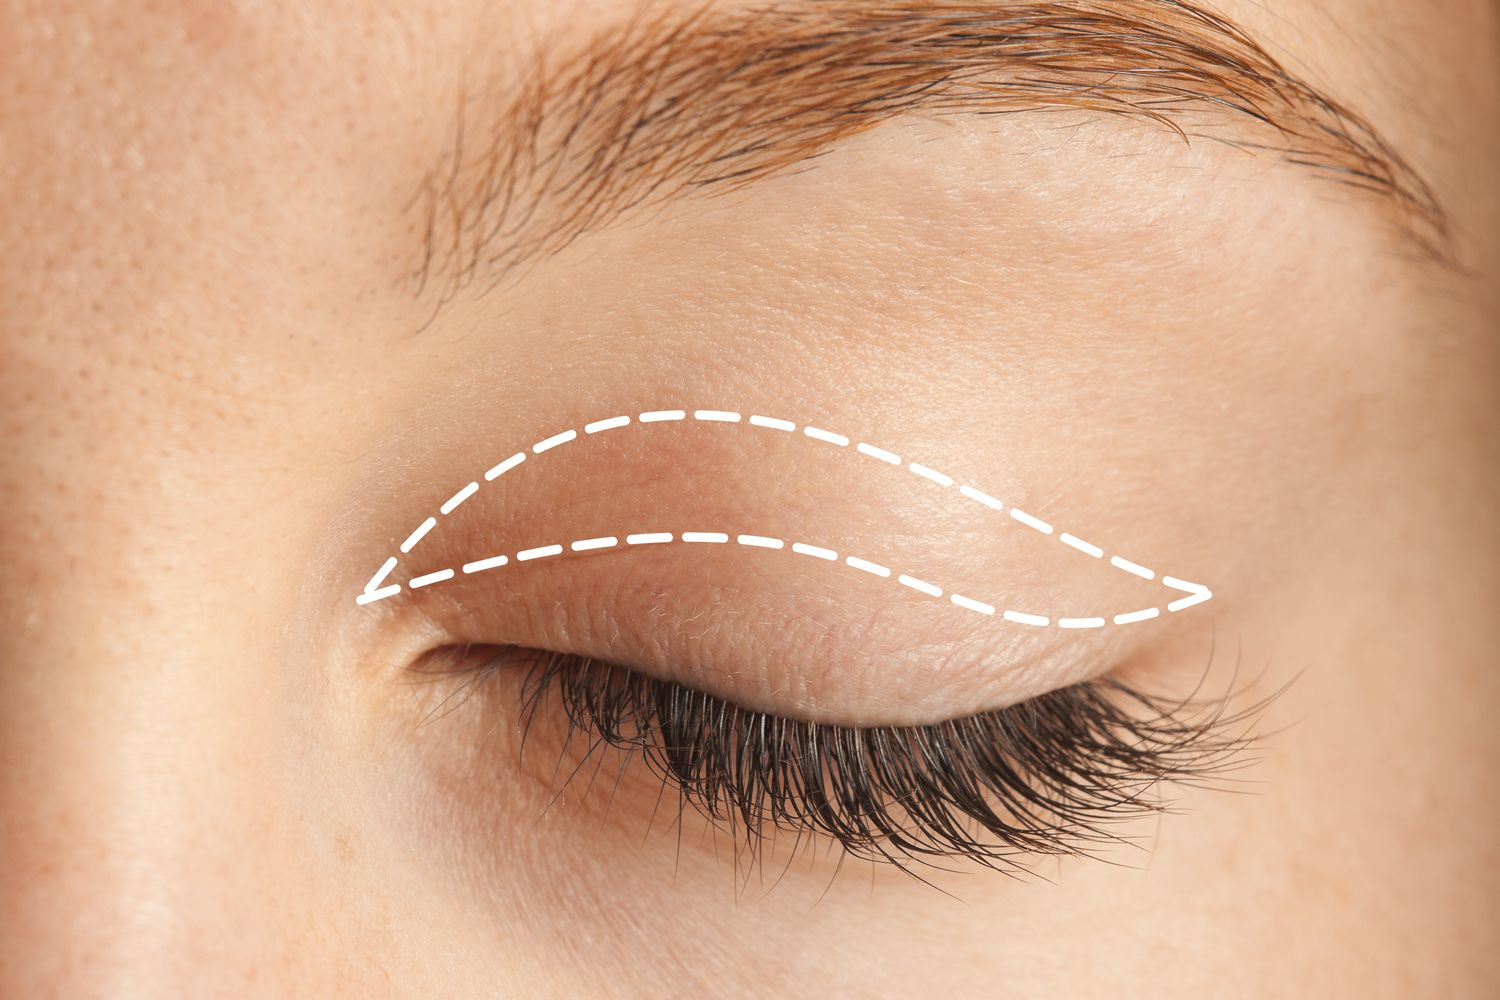 Incisions during cosmetic upper eyelid surgery